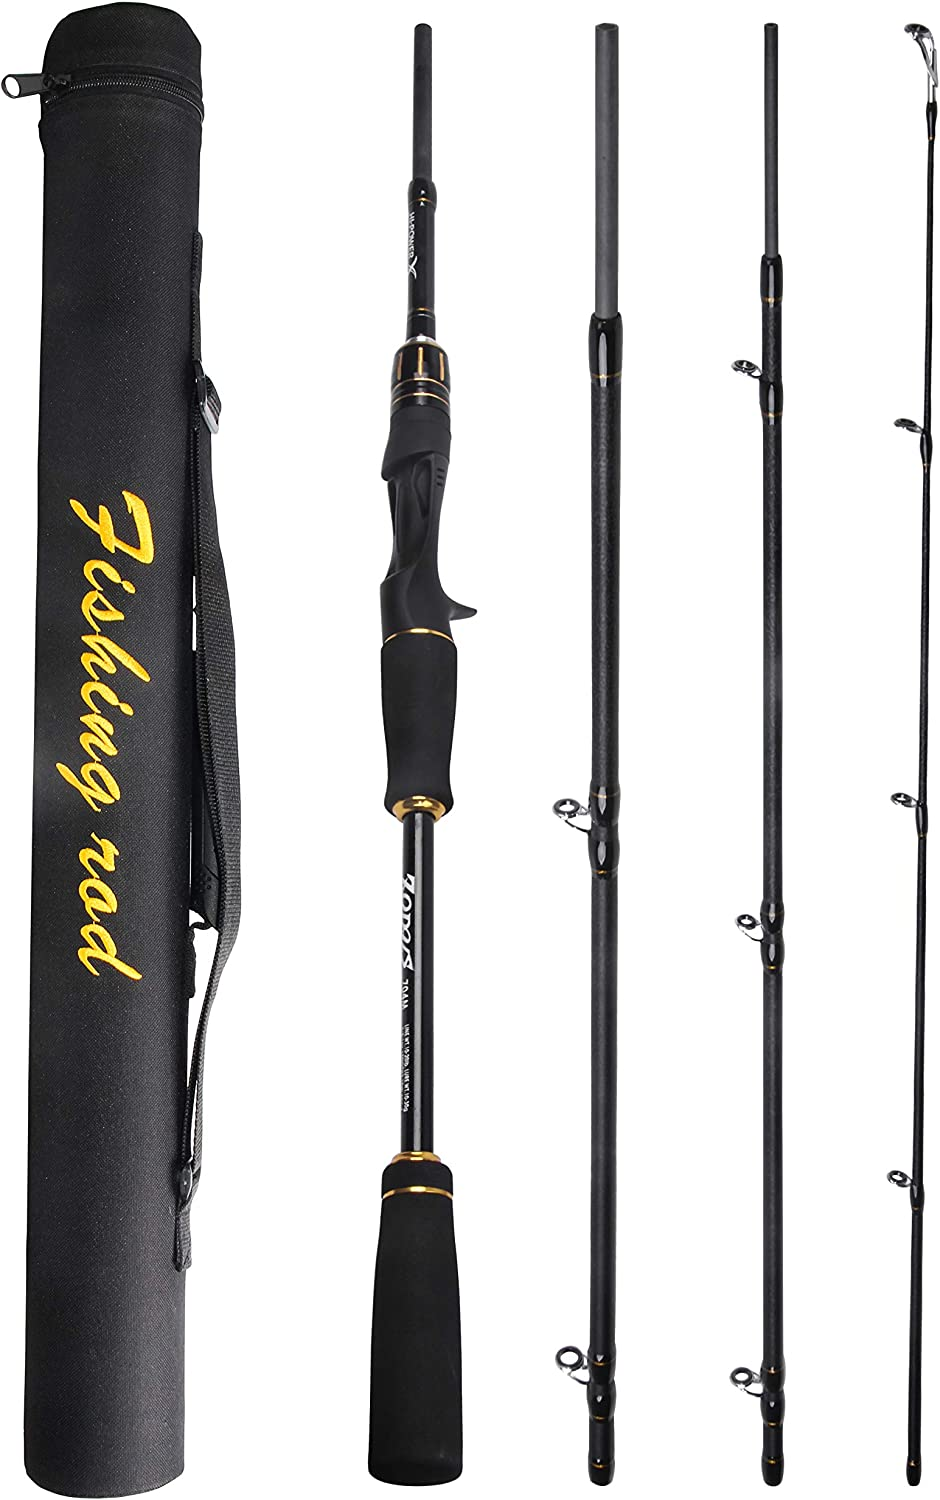 Shaddock Fishing Spinning Casting Fishing Travel Rod Lure Fishing Rod Tackle Including Carbon Fiber EVA Handle Ceramic Guide Rings in 4 Section 2.1M 2.4M